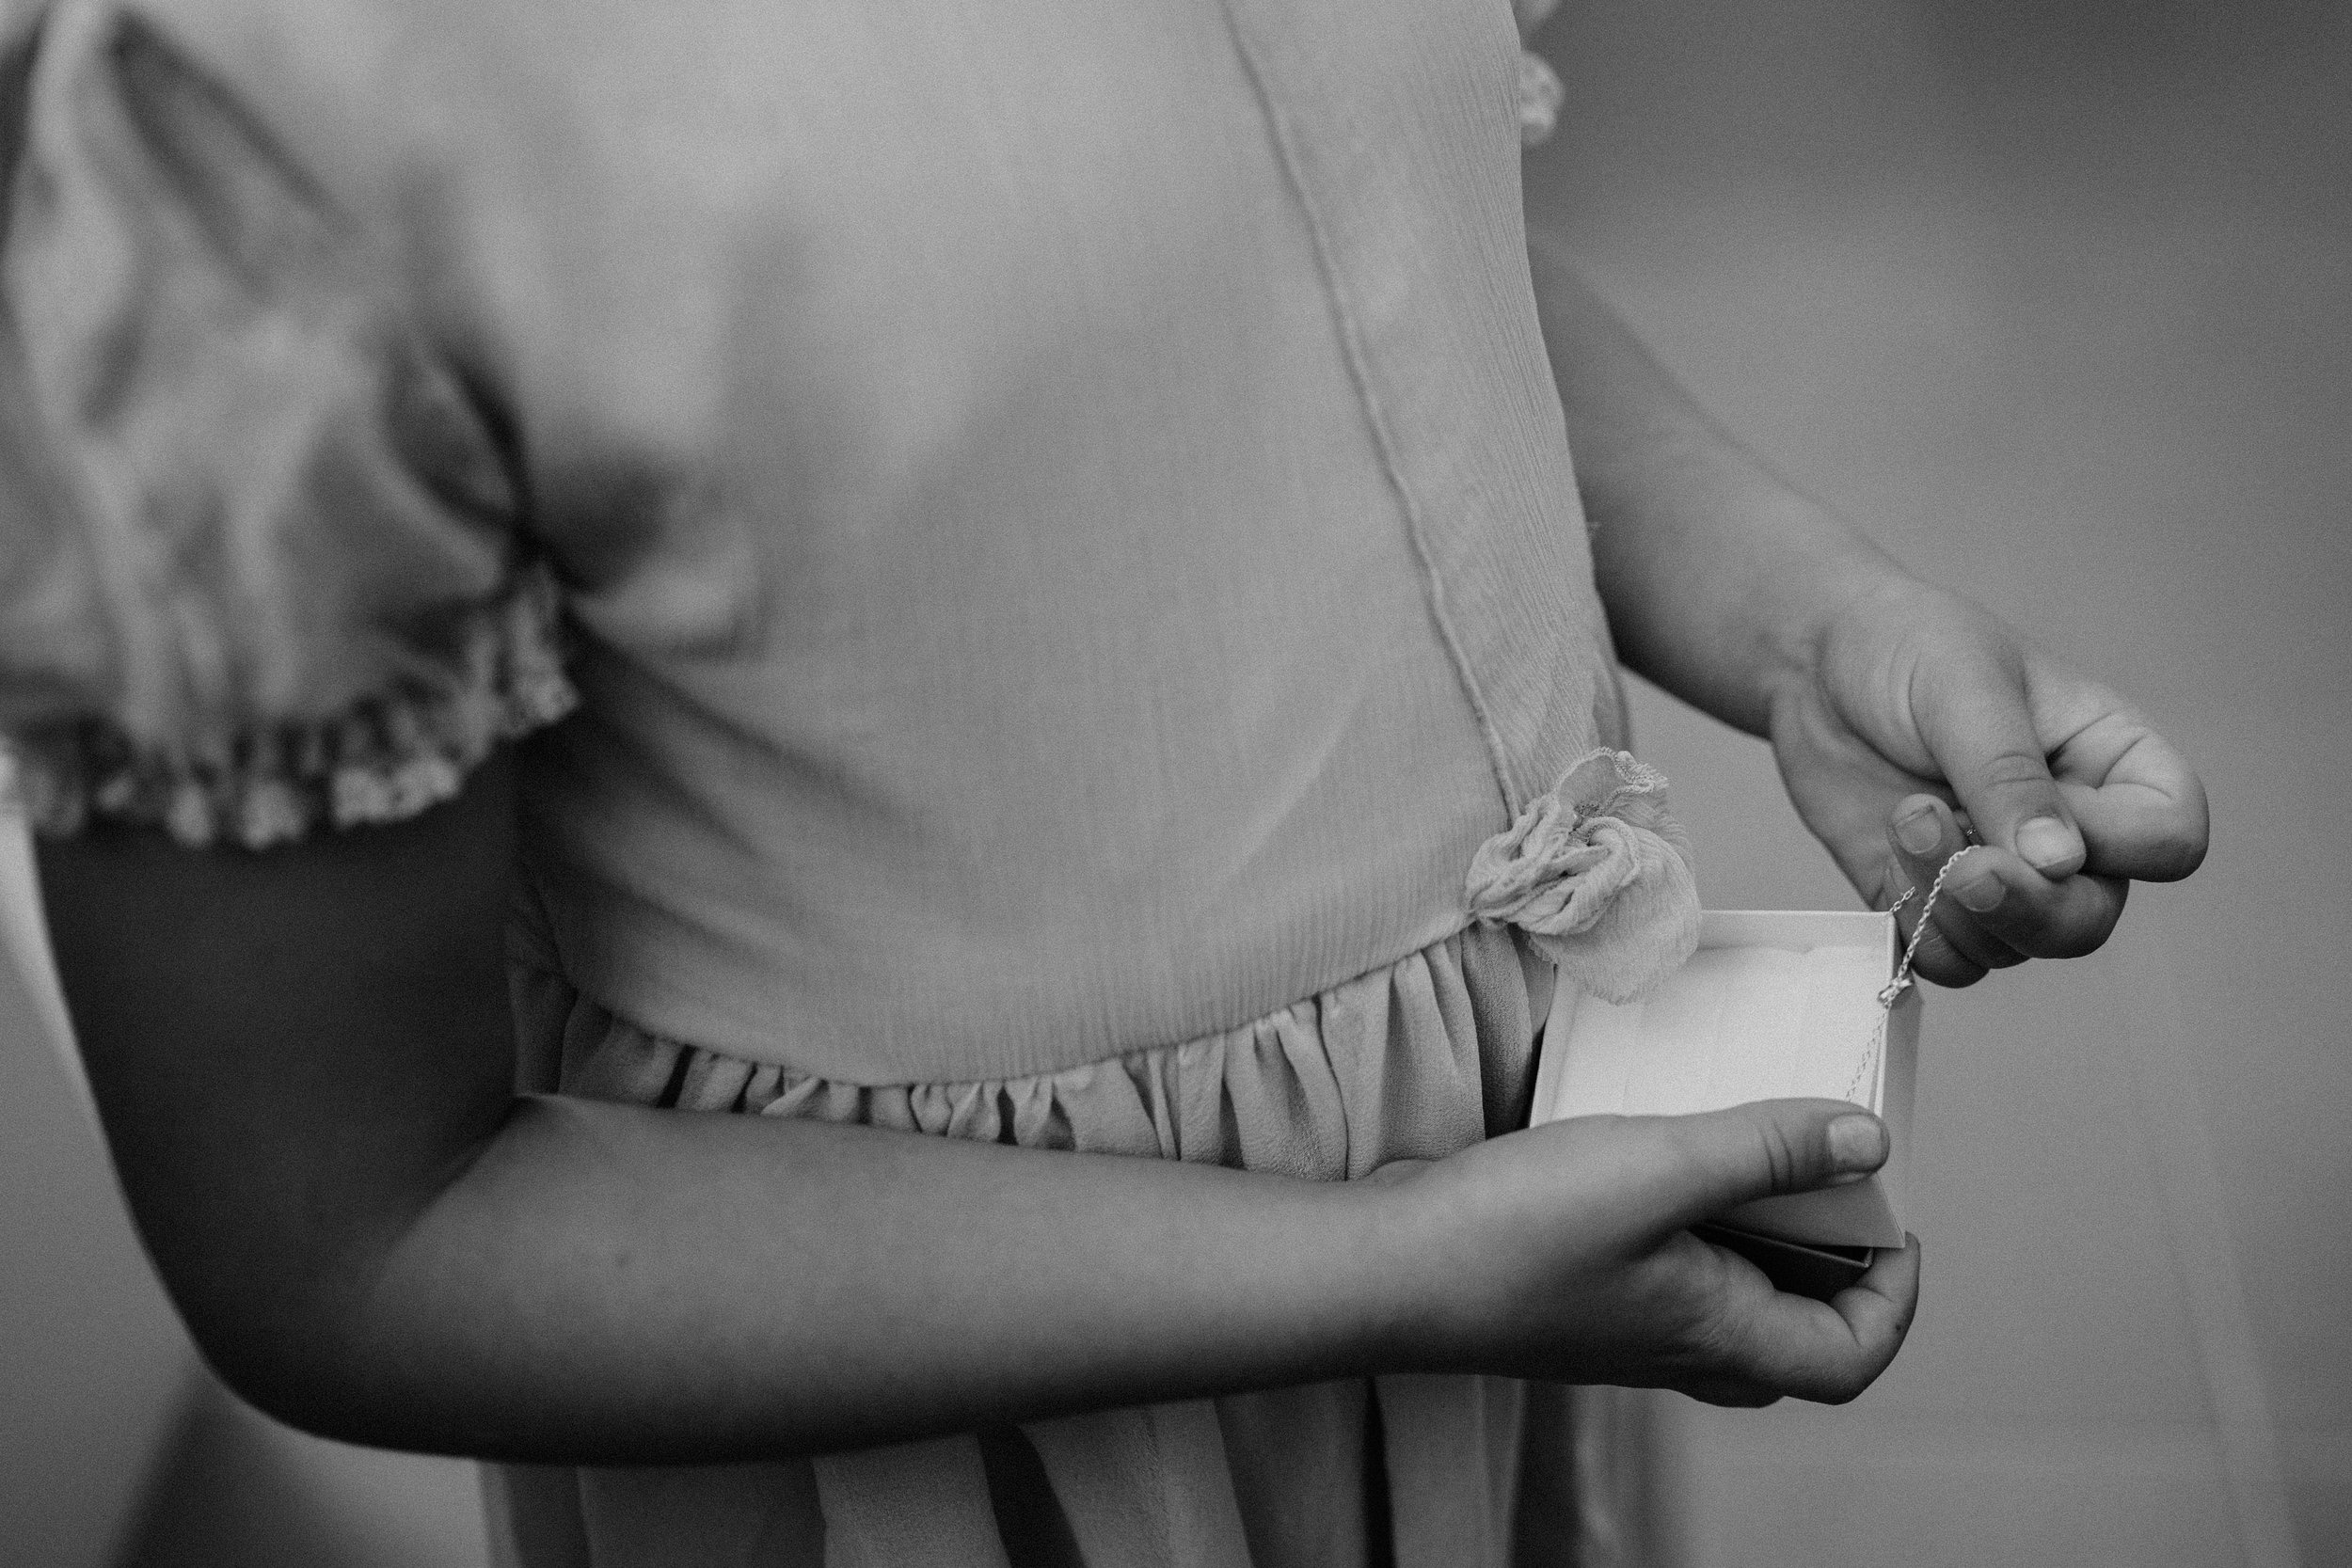 Details of Pearl's dress with a little silk flower tucked into the waist.